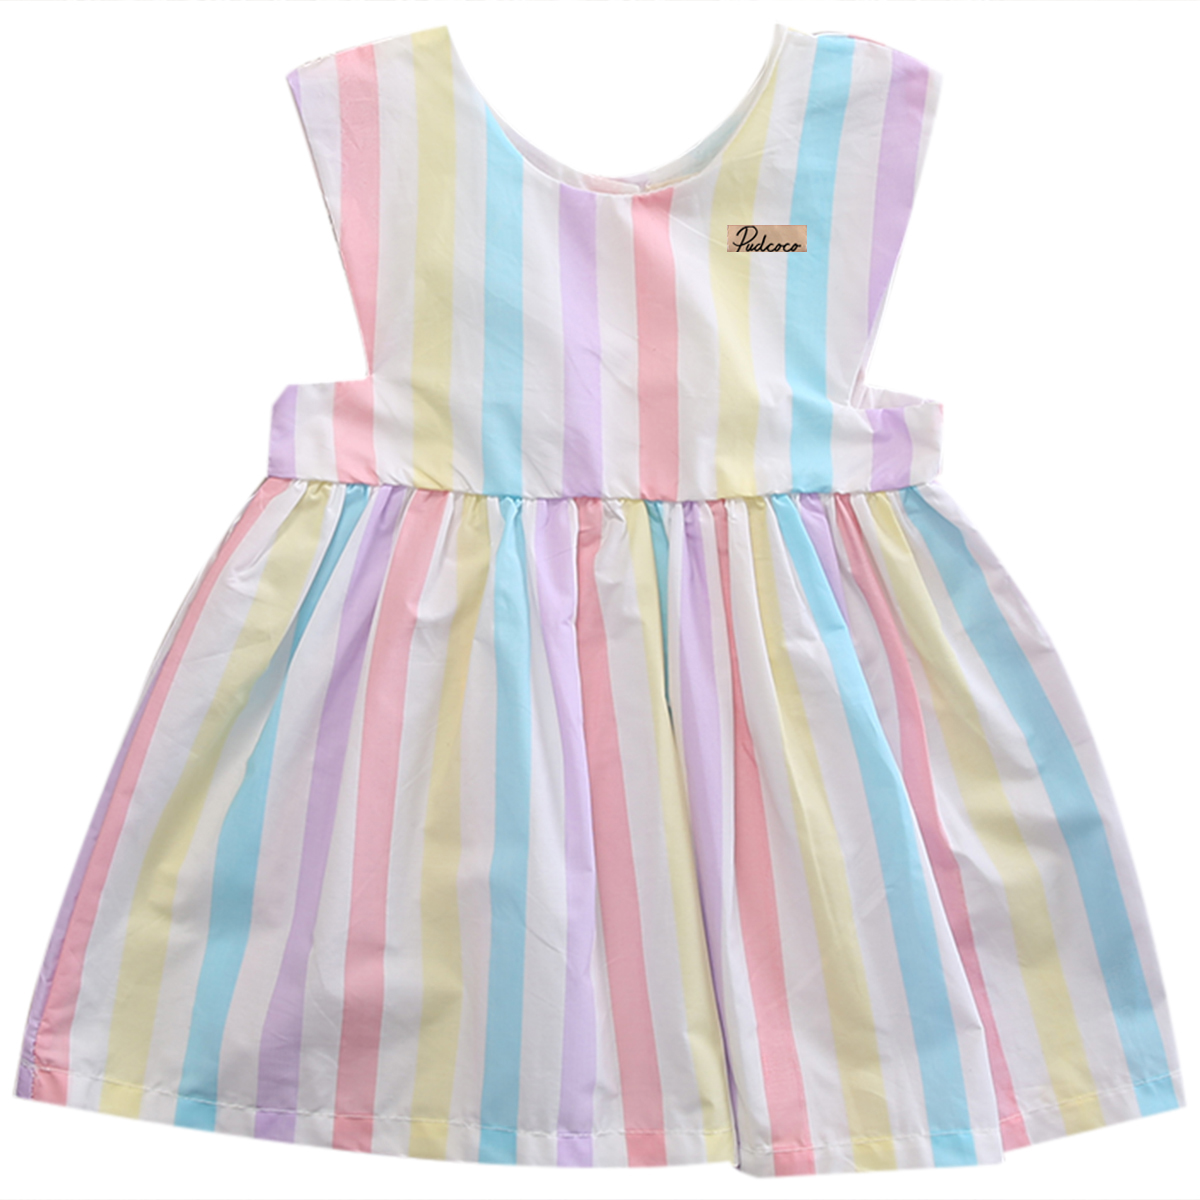 Cotton Sweet Baby Lovely Girls Dress Sleeveless Colourful Striped Summer Vest Button Dress Toddler Clothes